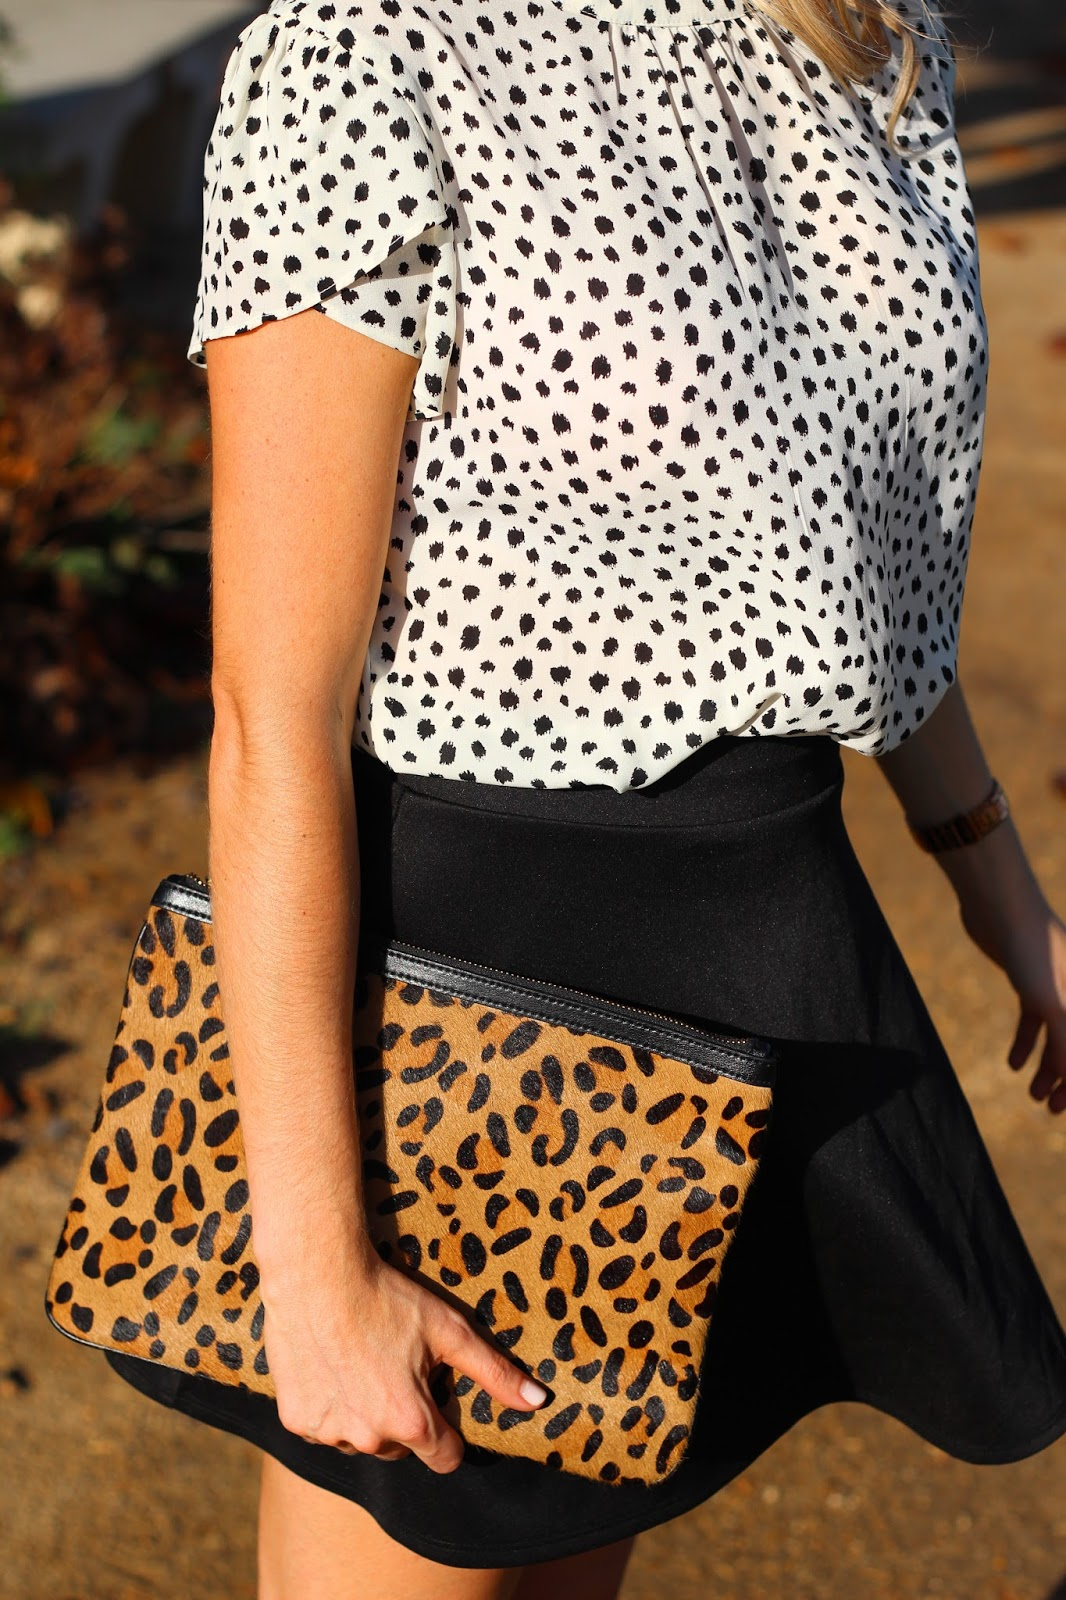 ad58d3b2315a Dalmatian Print Blouse from Forever 21 (similar here), Black Skater Skirt  c/o Charlotte Russe, Leopard Clutch from Banana Republic, Black Tie Pumps  from ...